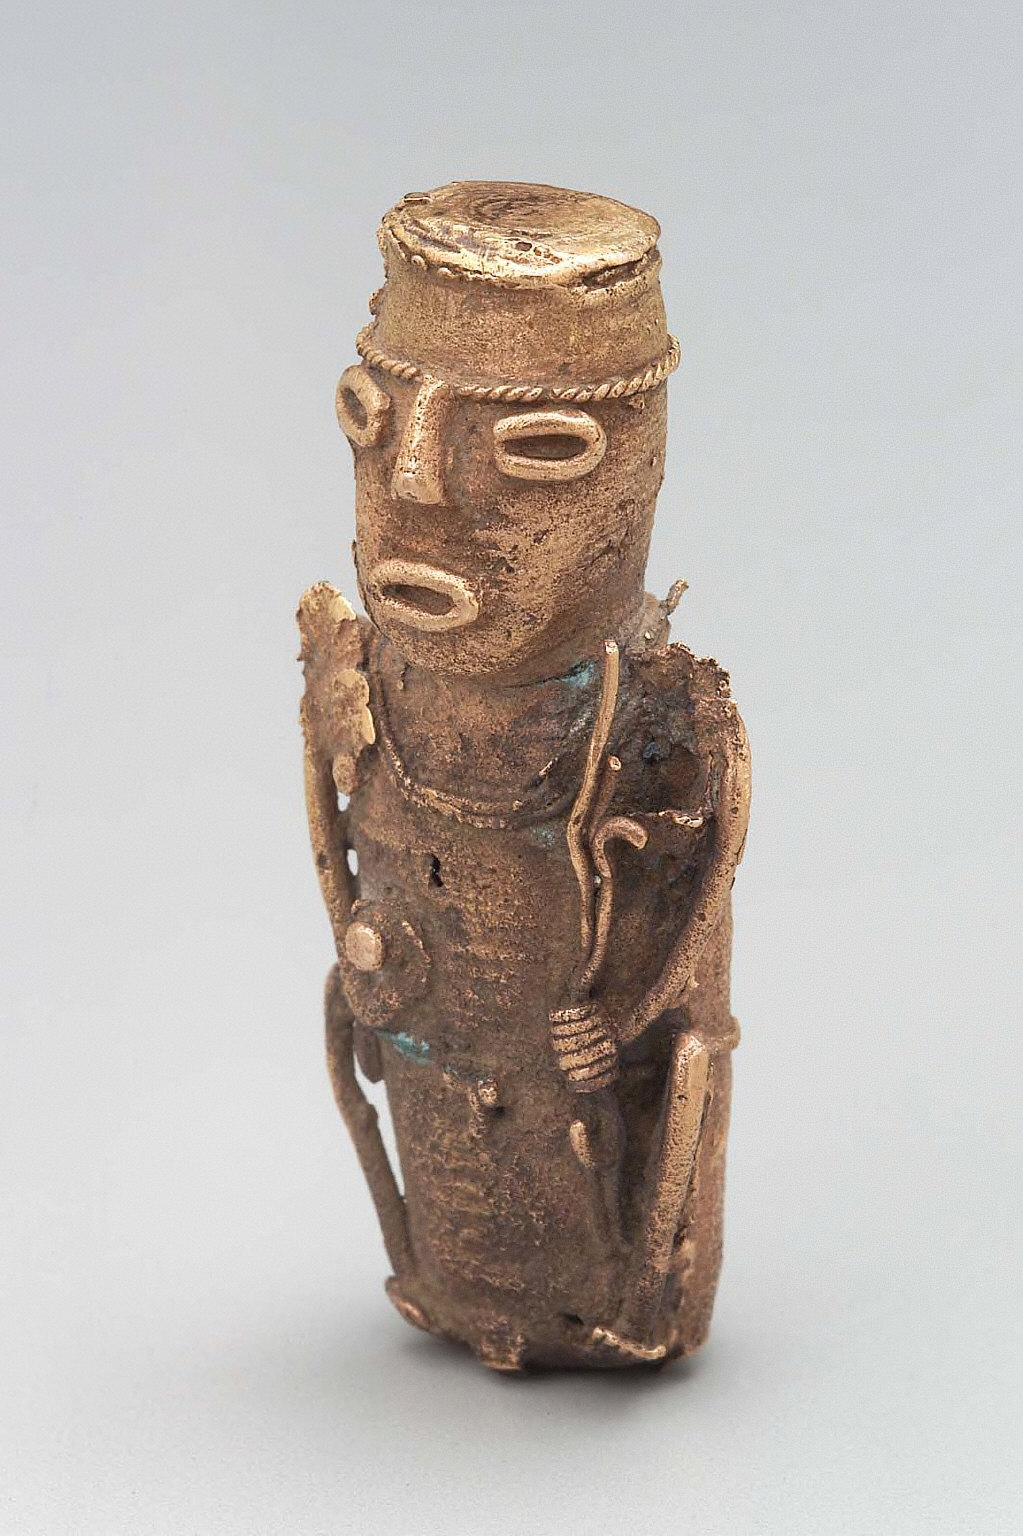 Seated male effigy figure